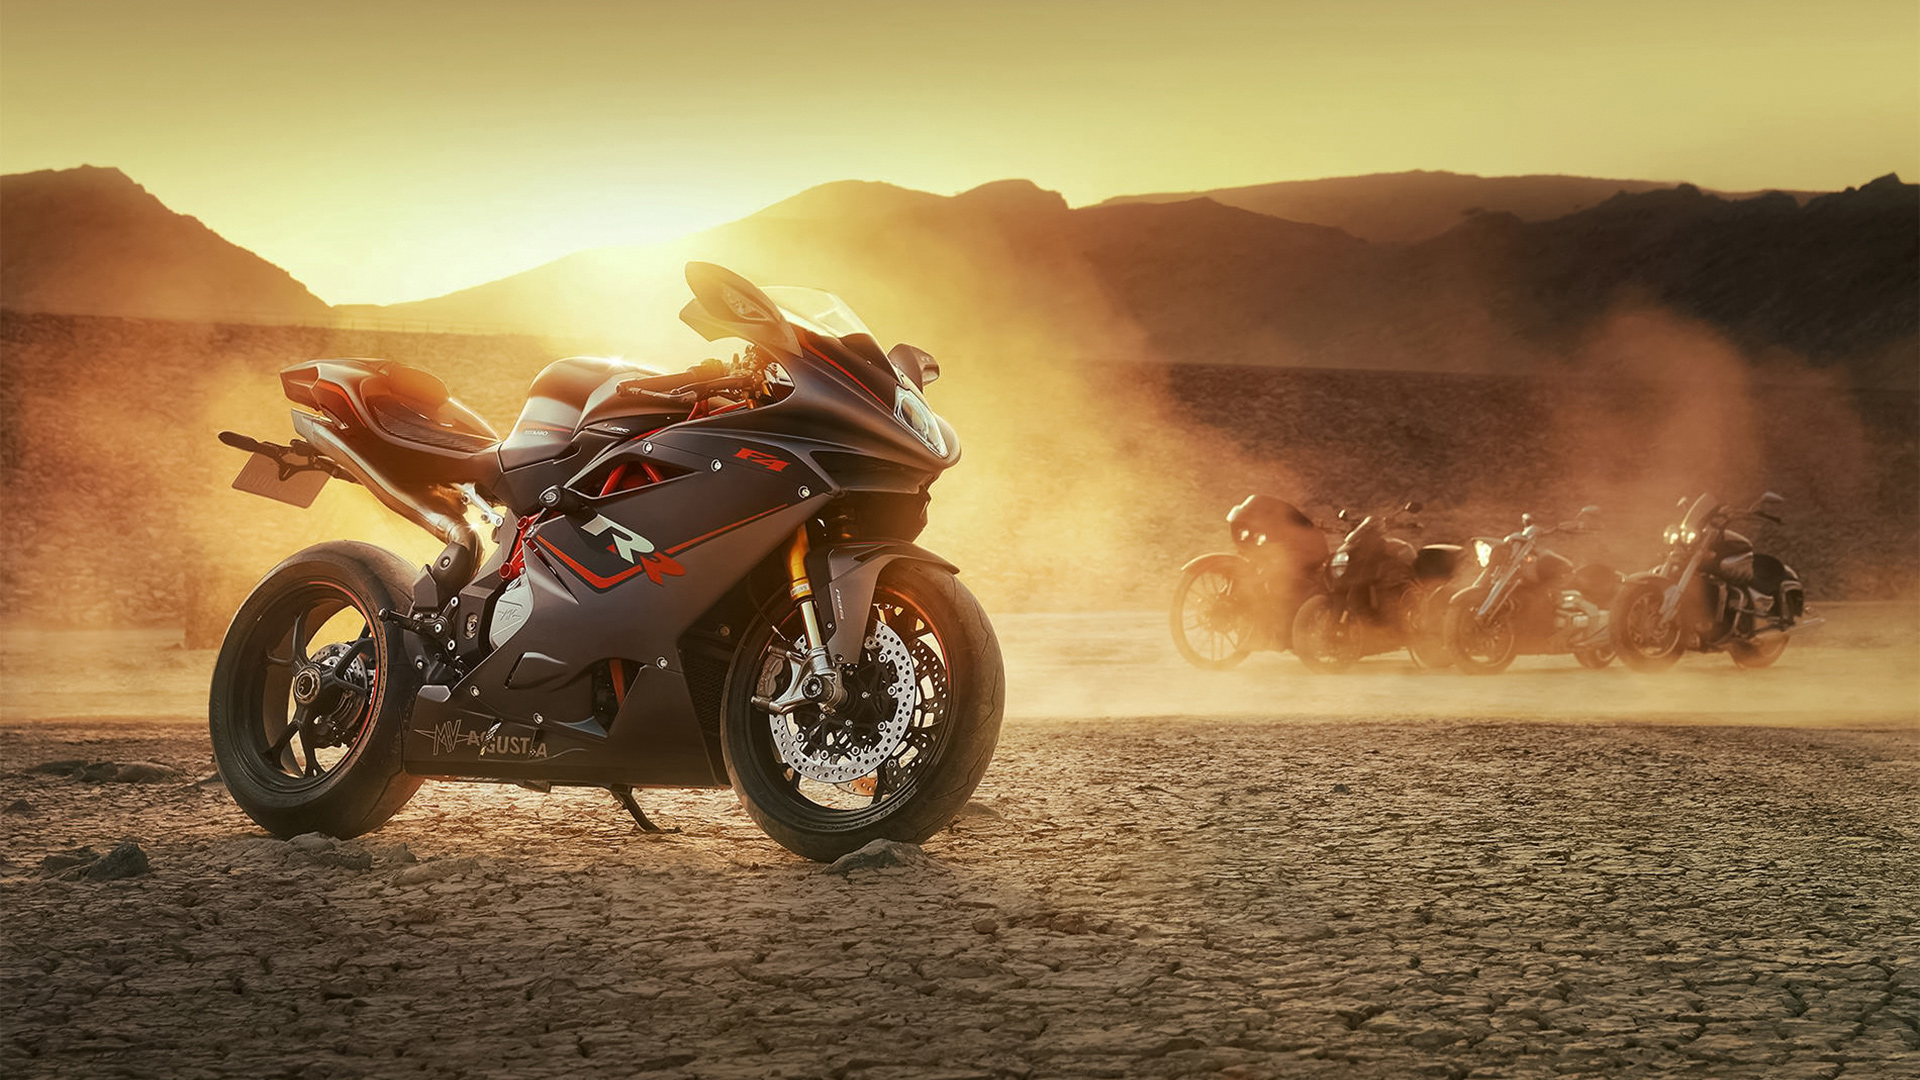 Hd Wallpapers For Bike High Quality Hd Wallpapers Nature